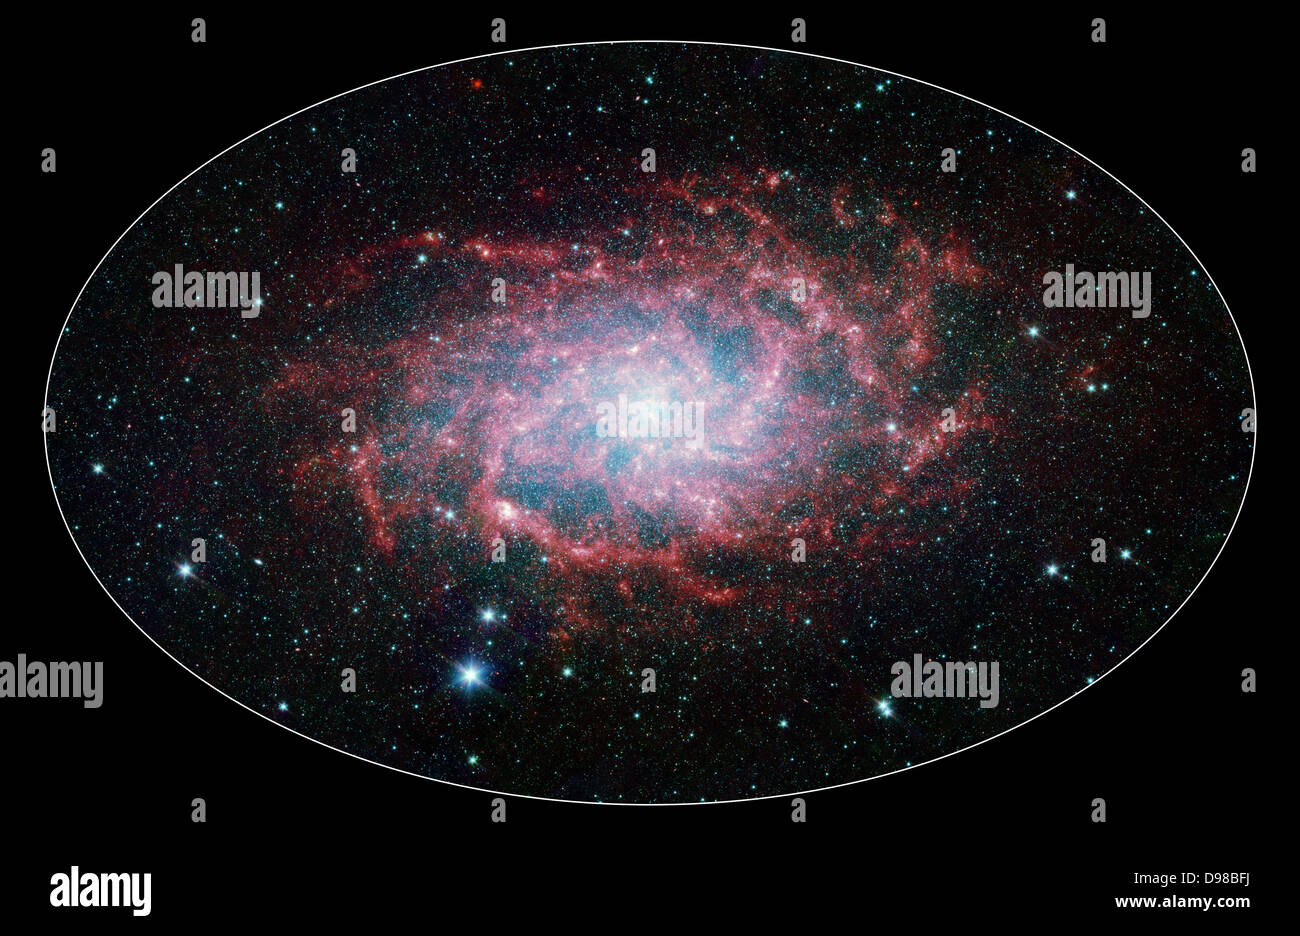 One of our closest galactic neighbours shows its awesome beauty in this new image from NASA's Spitzer Space - Stock Image